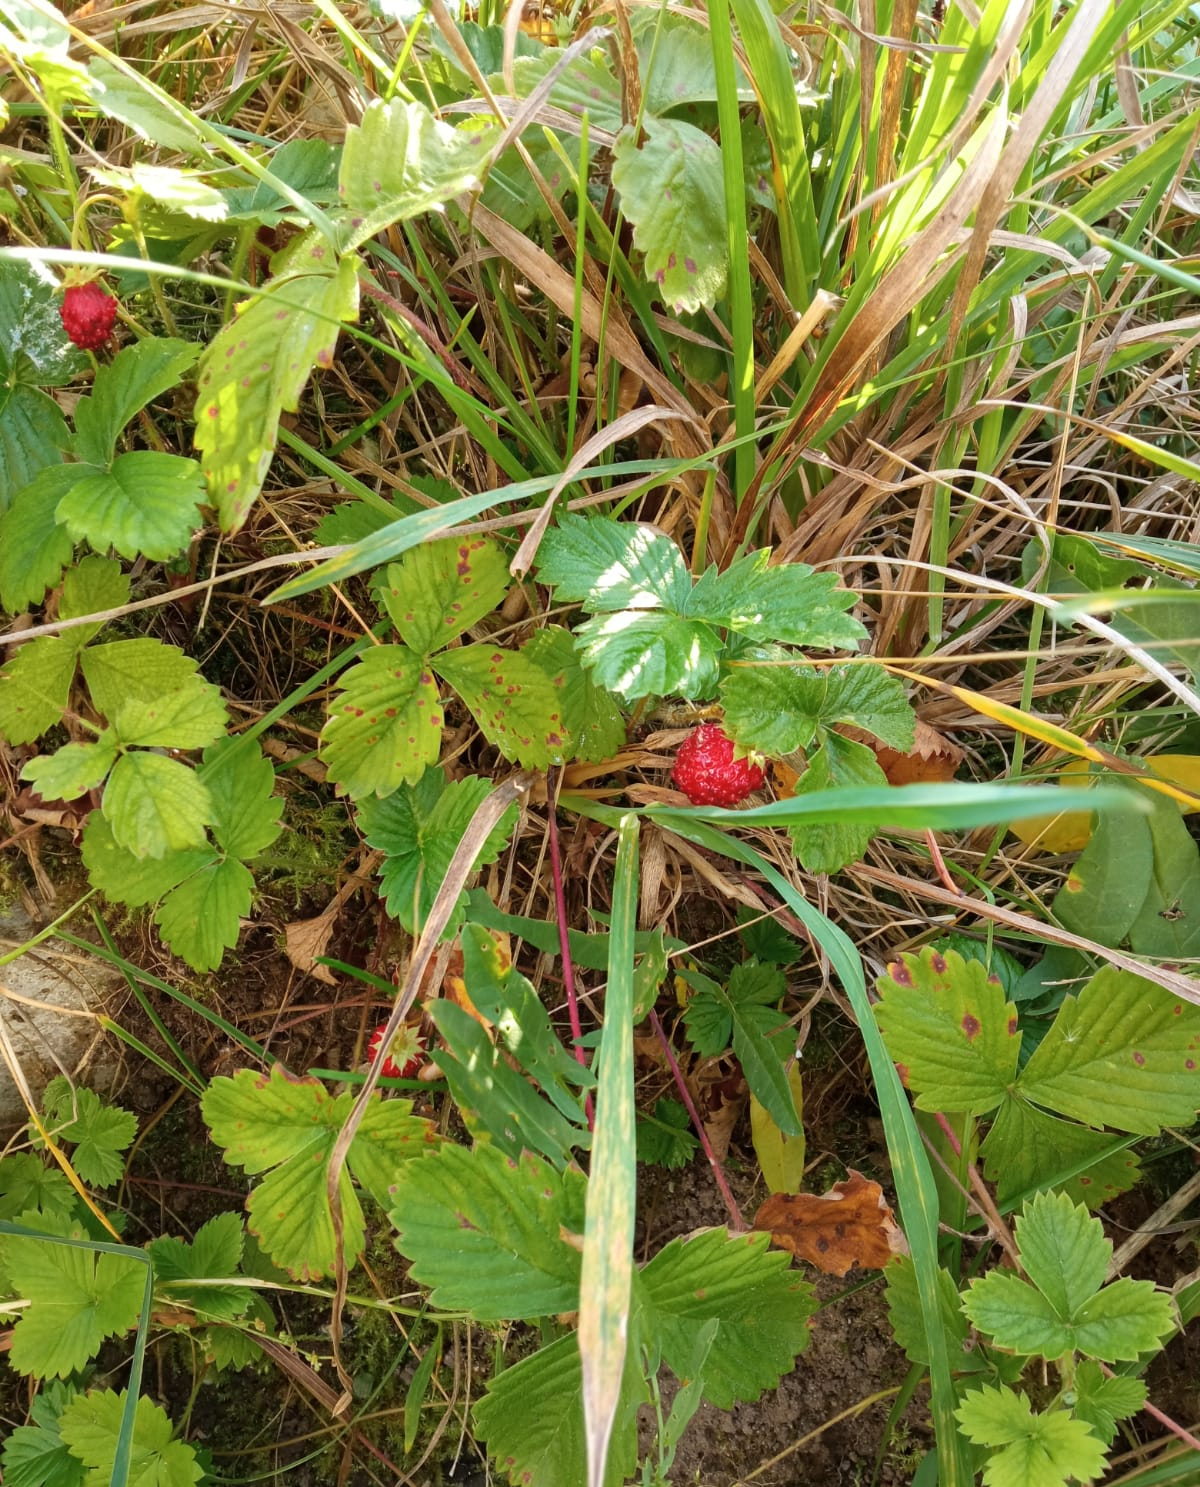 strawberry bush with berries among grass